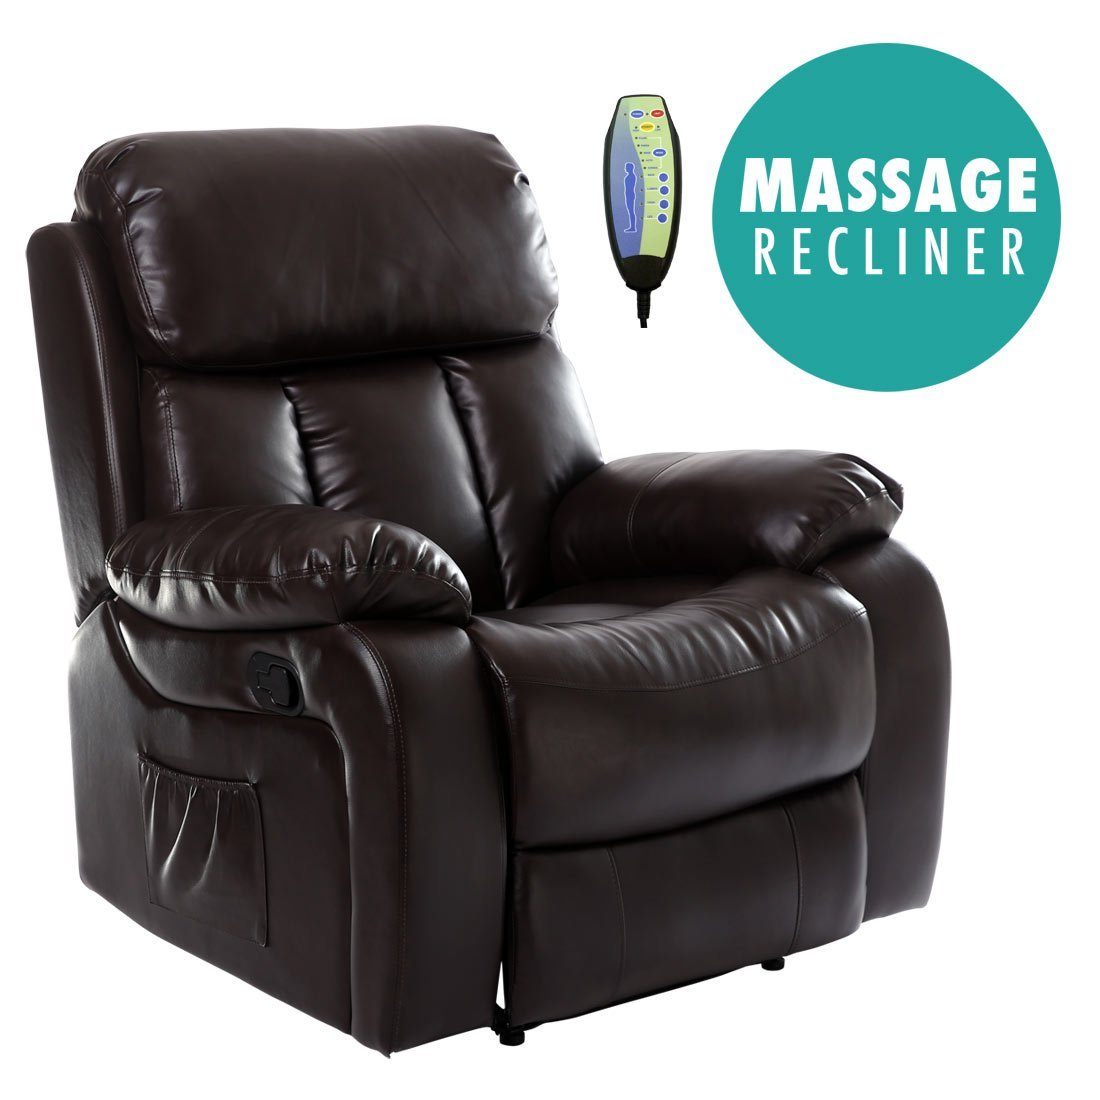 More4Homes (tm) CHESTER HEATED MASSAGE RECLINER BONDED LEATHER CHAIR SOFA LOUNGE GAMING HOME ARMCHAIR (Brown) Sonic Online Ltd